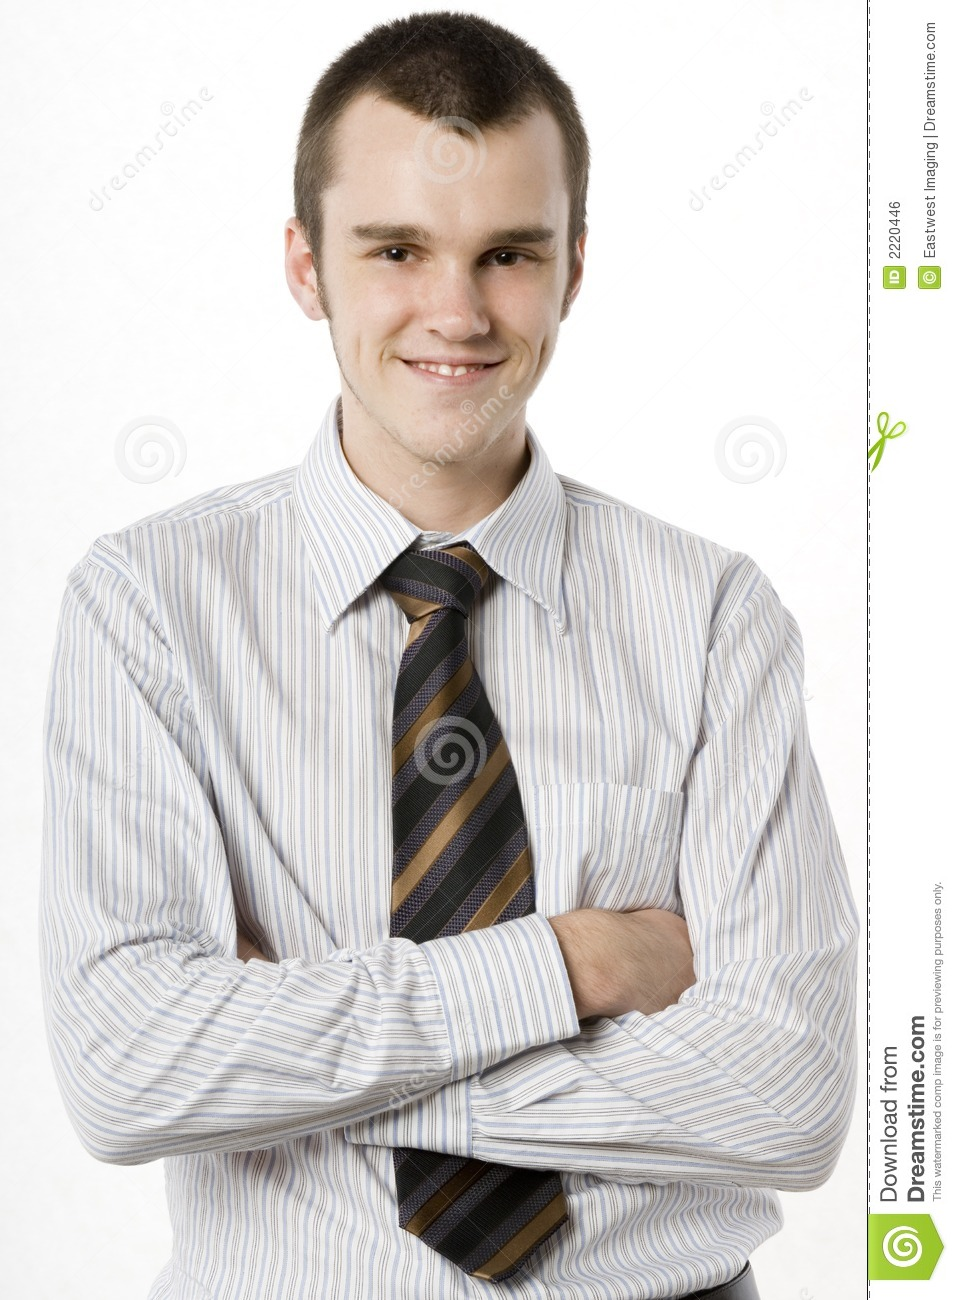 Young Man In Shirt And Tie Royalty Free Stock Image ...